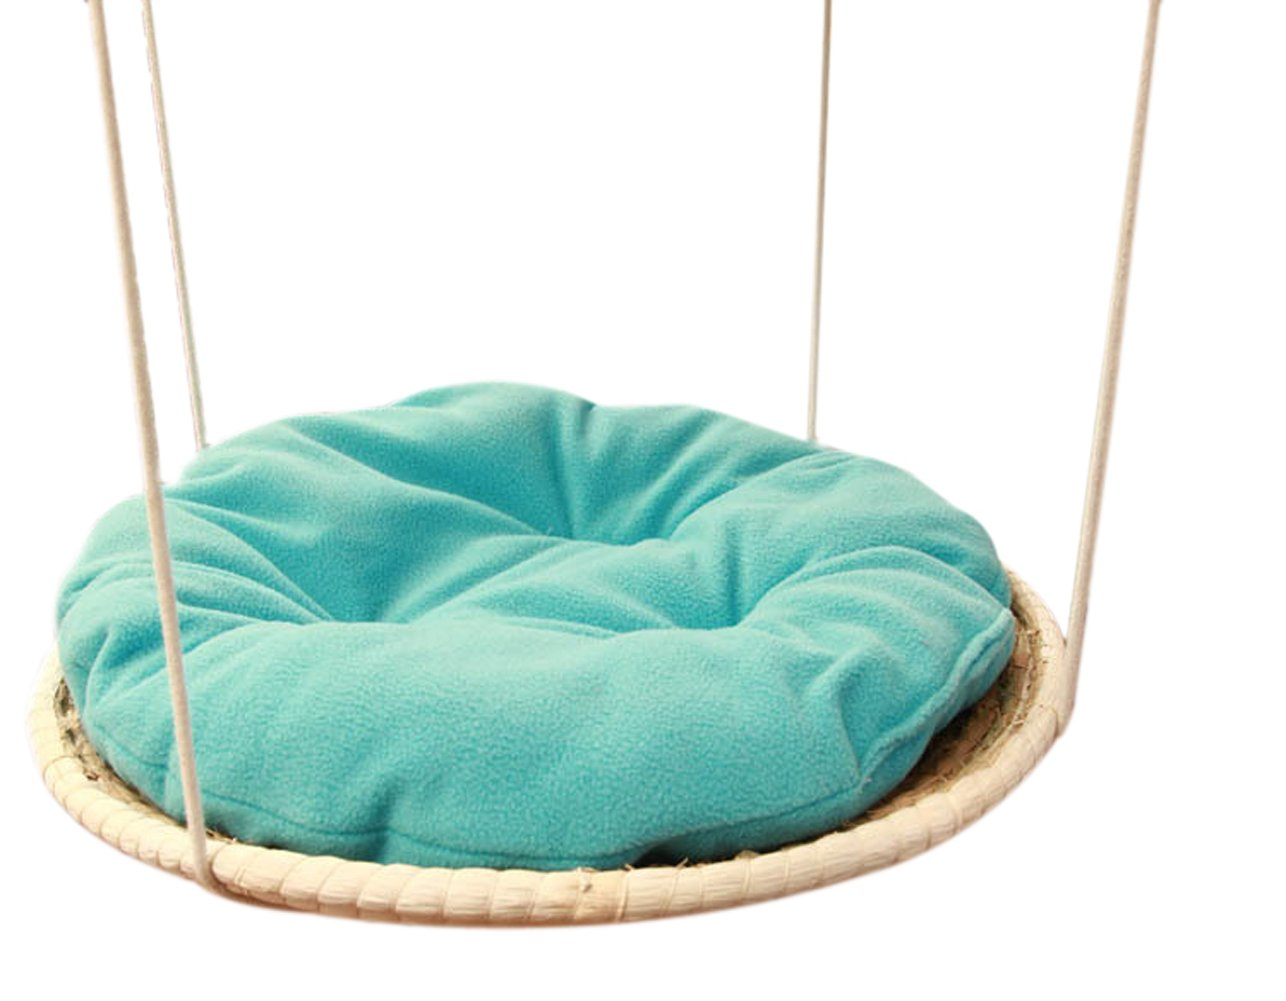 Chickle Hand Made Woven Cat House Bed Hanging Hammock Pet Supplies for Small Animal by Chickle (Image #1)